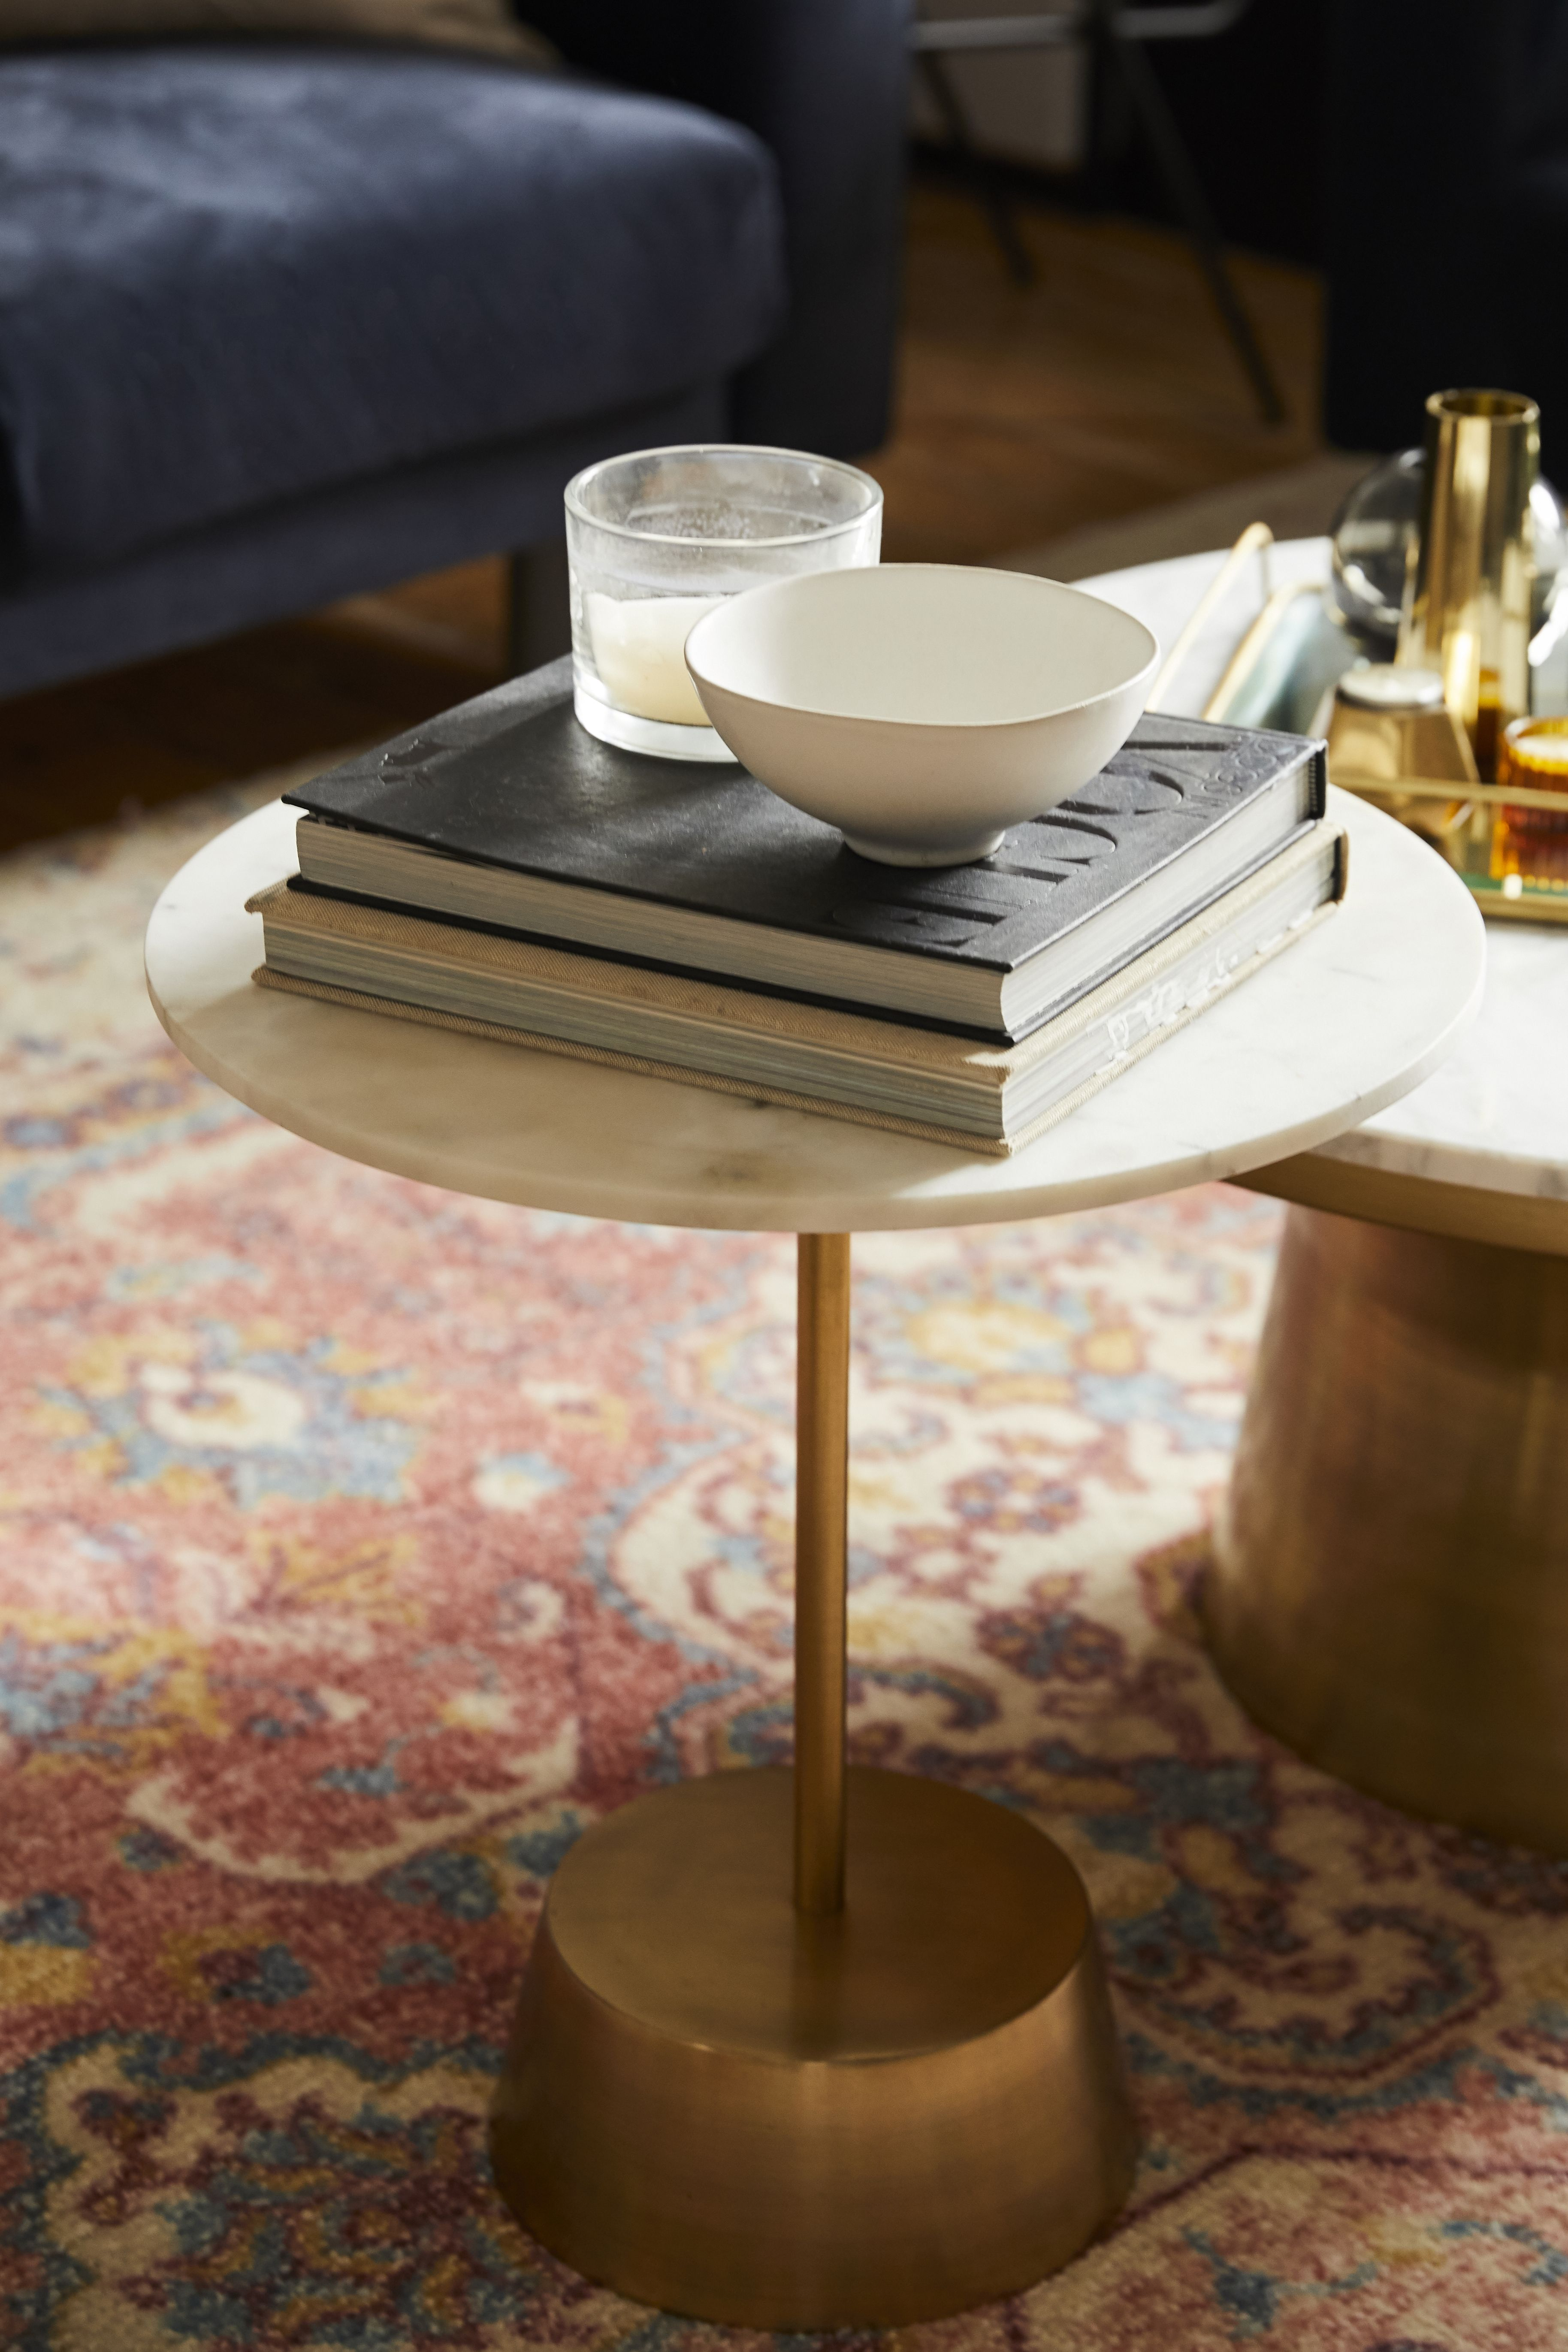 Pin By West Elm On Home Tours Modern Coffee Tables Coffee Table With Storage Reclaimed Wood Coffee Table [ 5483 x 3655 Pixel ]